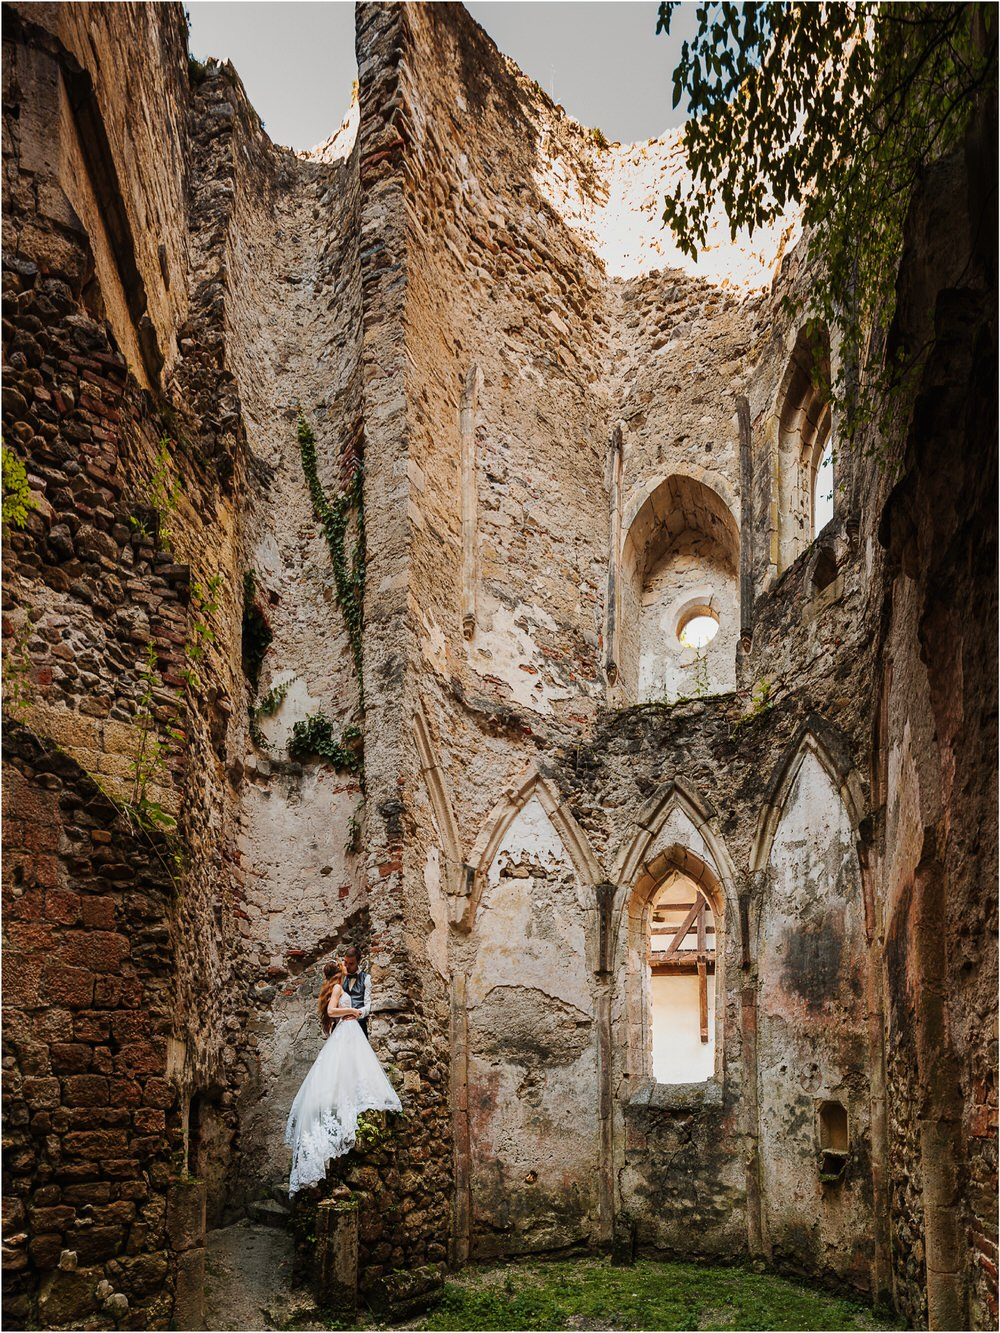 destination wedding italy greece ireland france uk photographer poroka poročni fotograf poročno fotografiranje gredič tri lučke bled tuscany 0224.jpg